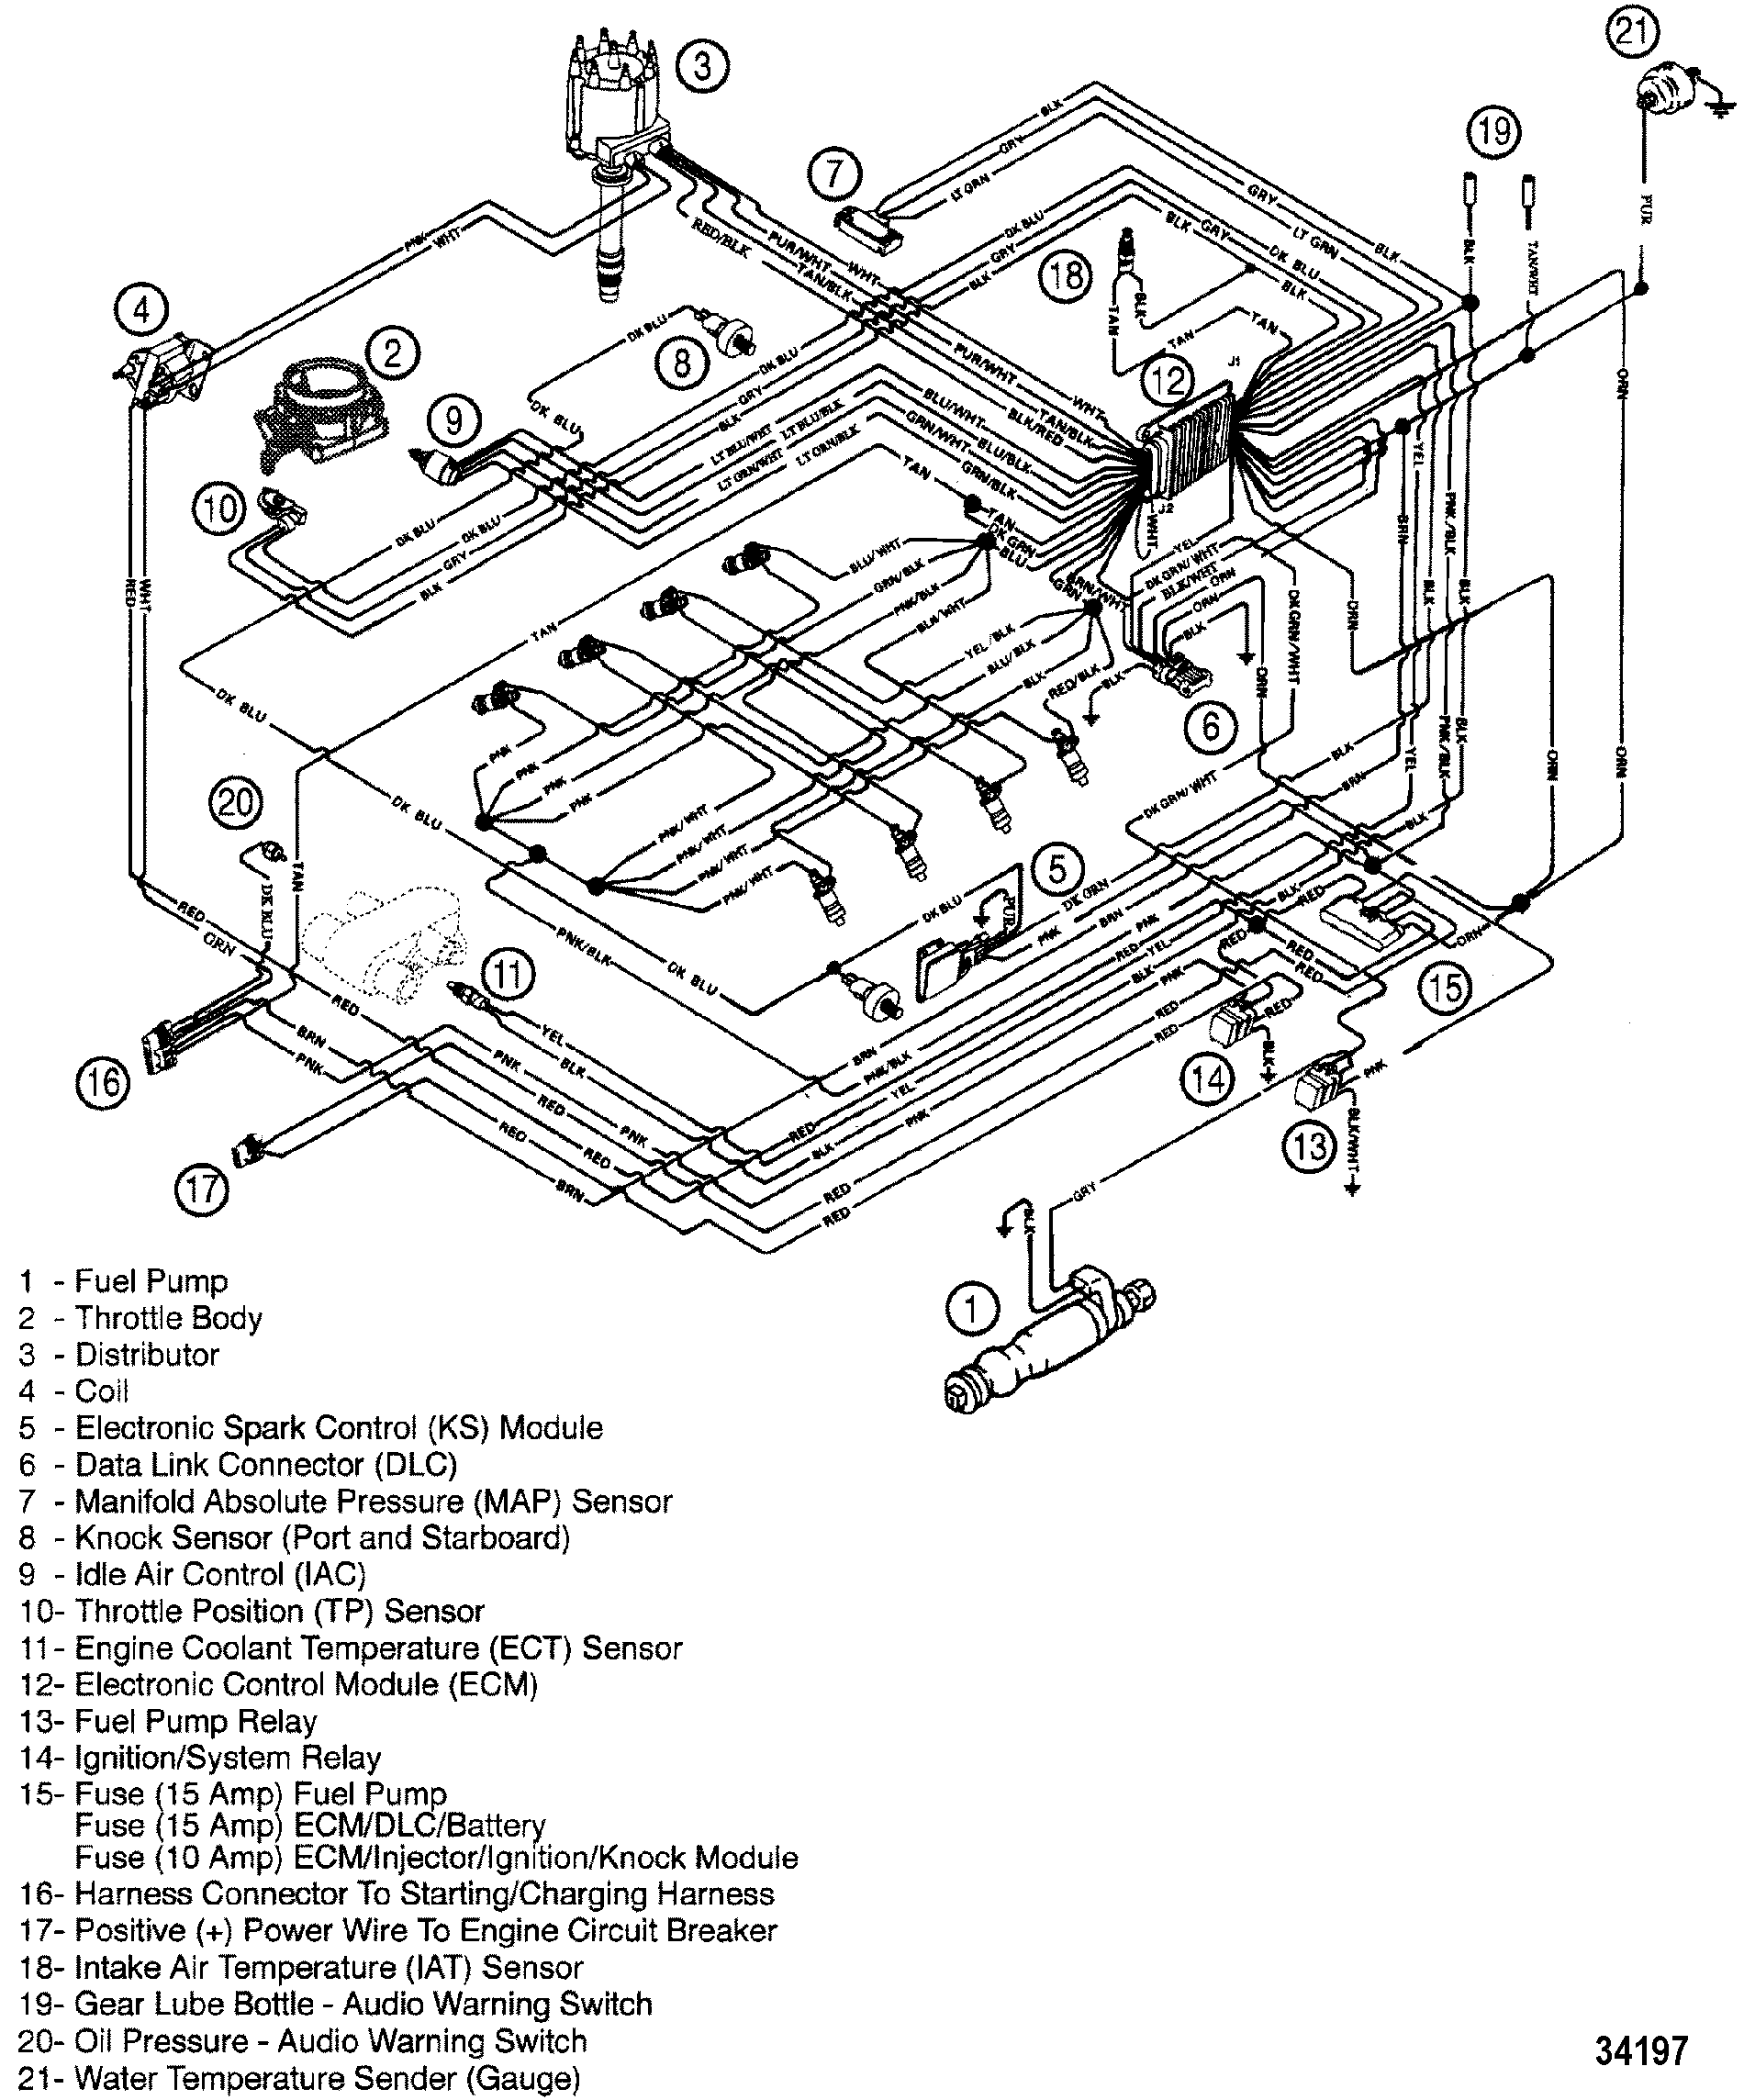 Carburetor Mercarb moreover Power Steering Pump Assembly besides Dodge 4 7 Engine Timing Chain Diagram also Inboard Engine Diagram also Ford Flathead V8 Engine Diagram. on mercruiser 5 0 engine diagram